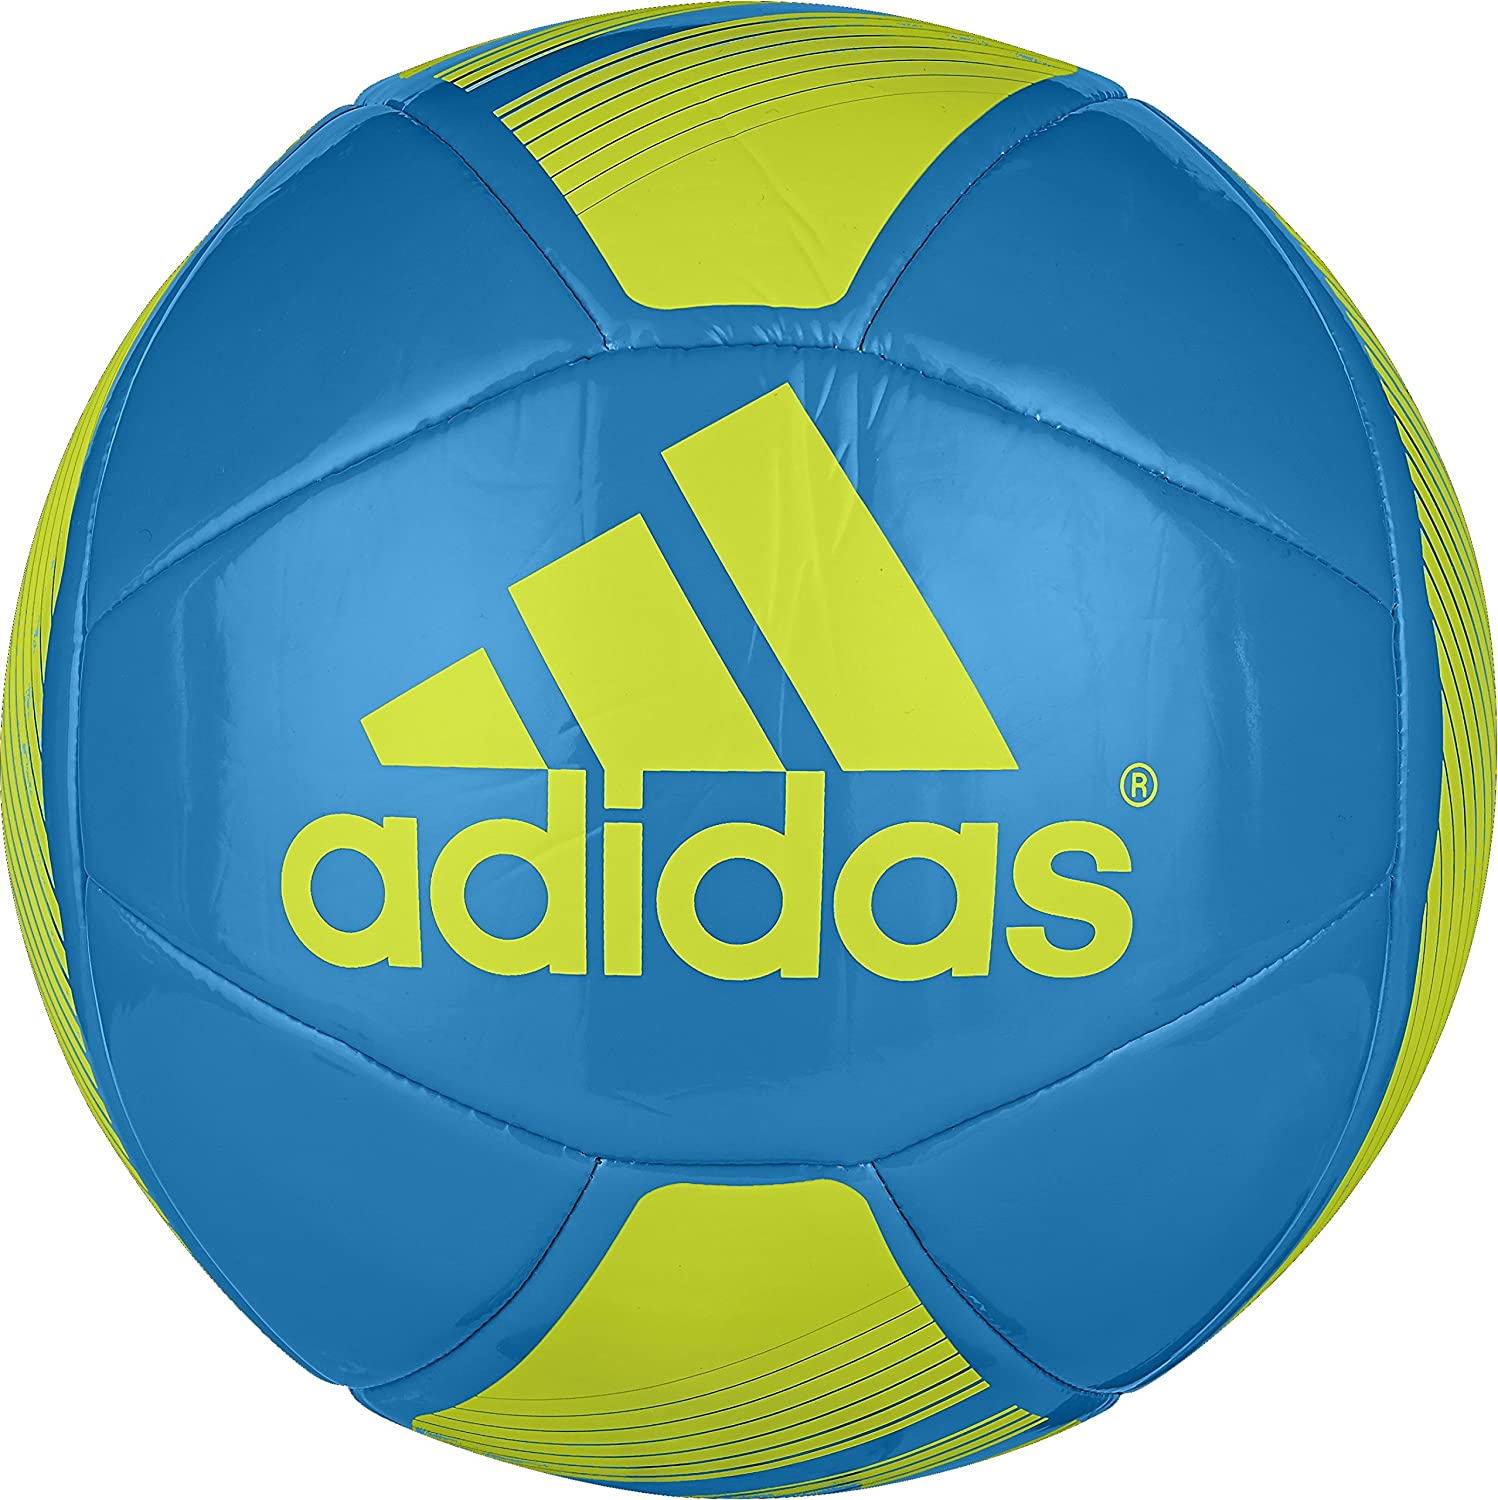 Soccer ball craft ideas - Adidas Performance Epp Glider Soccer Ball